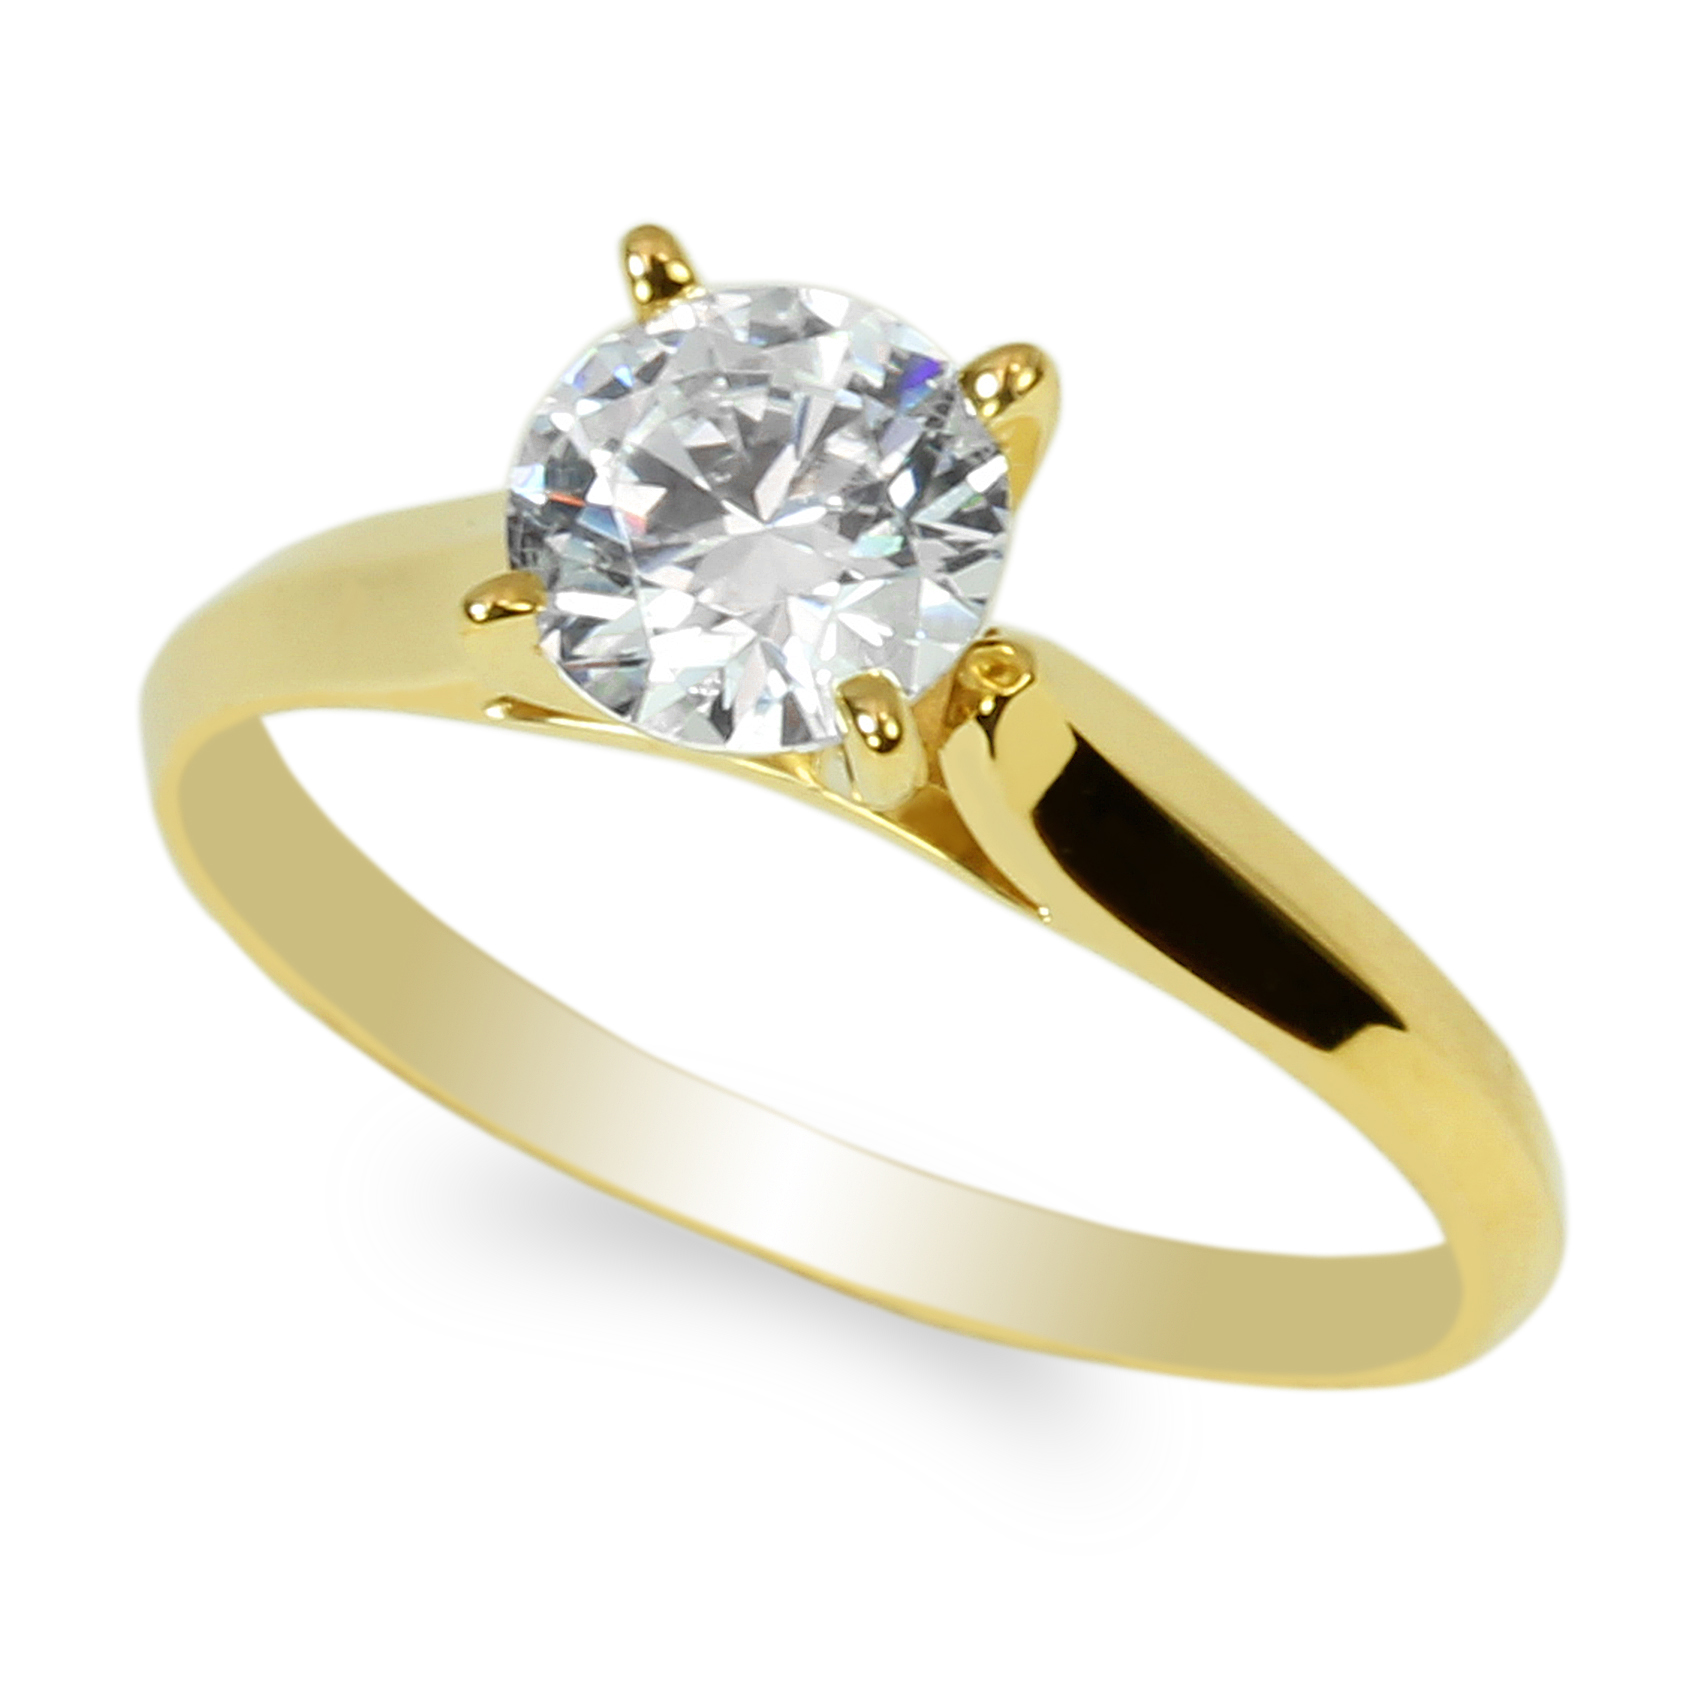 JamesJenny Womens 10K14K Yellow Gold Two Tone Lines Round CZ Solitaire Engagement Ring Size 4-9